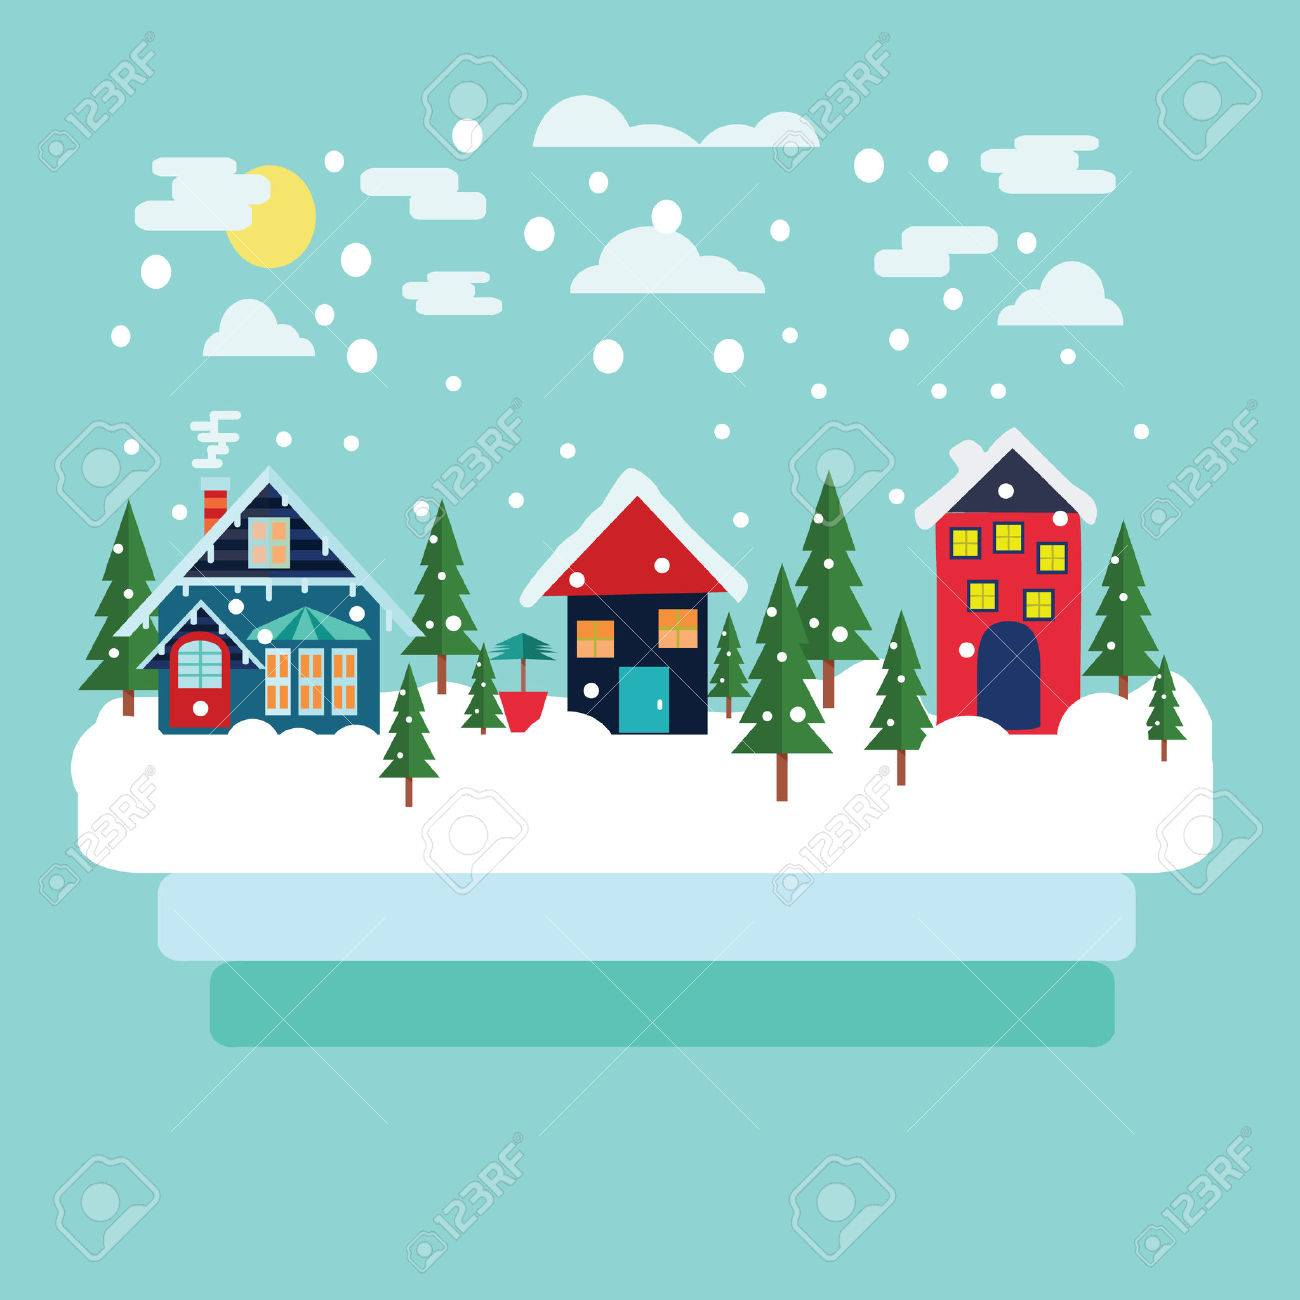 Merry Christmas greeting card design with Winter country landscape with firs in flat modern style. Stock Vector - 64553006